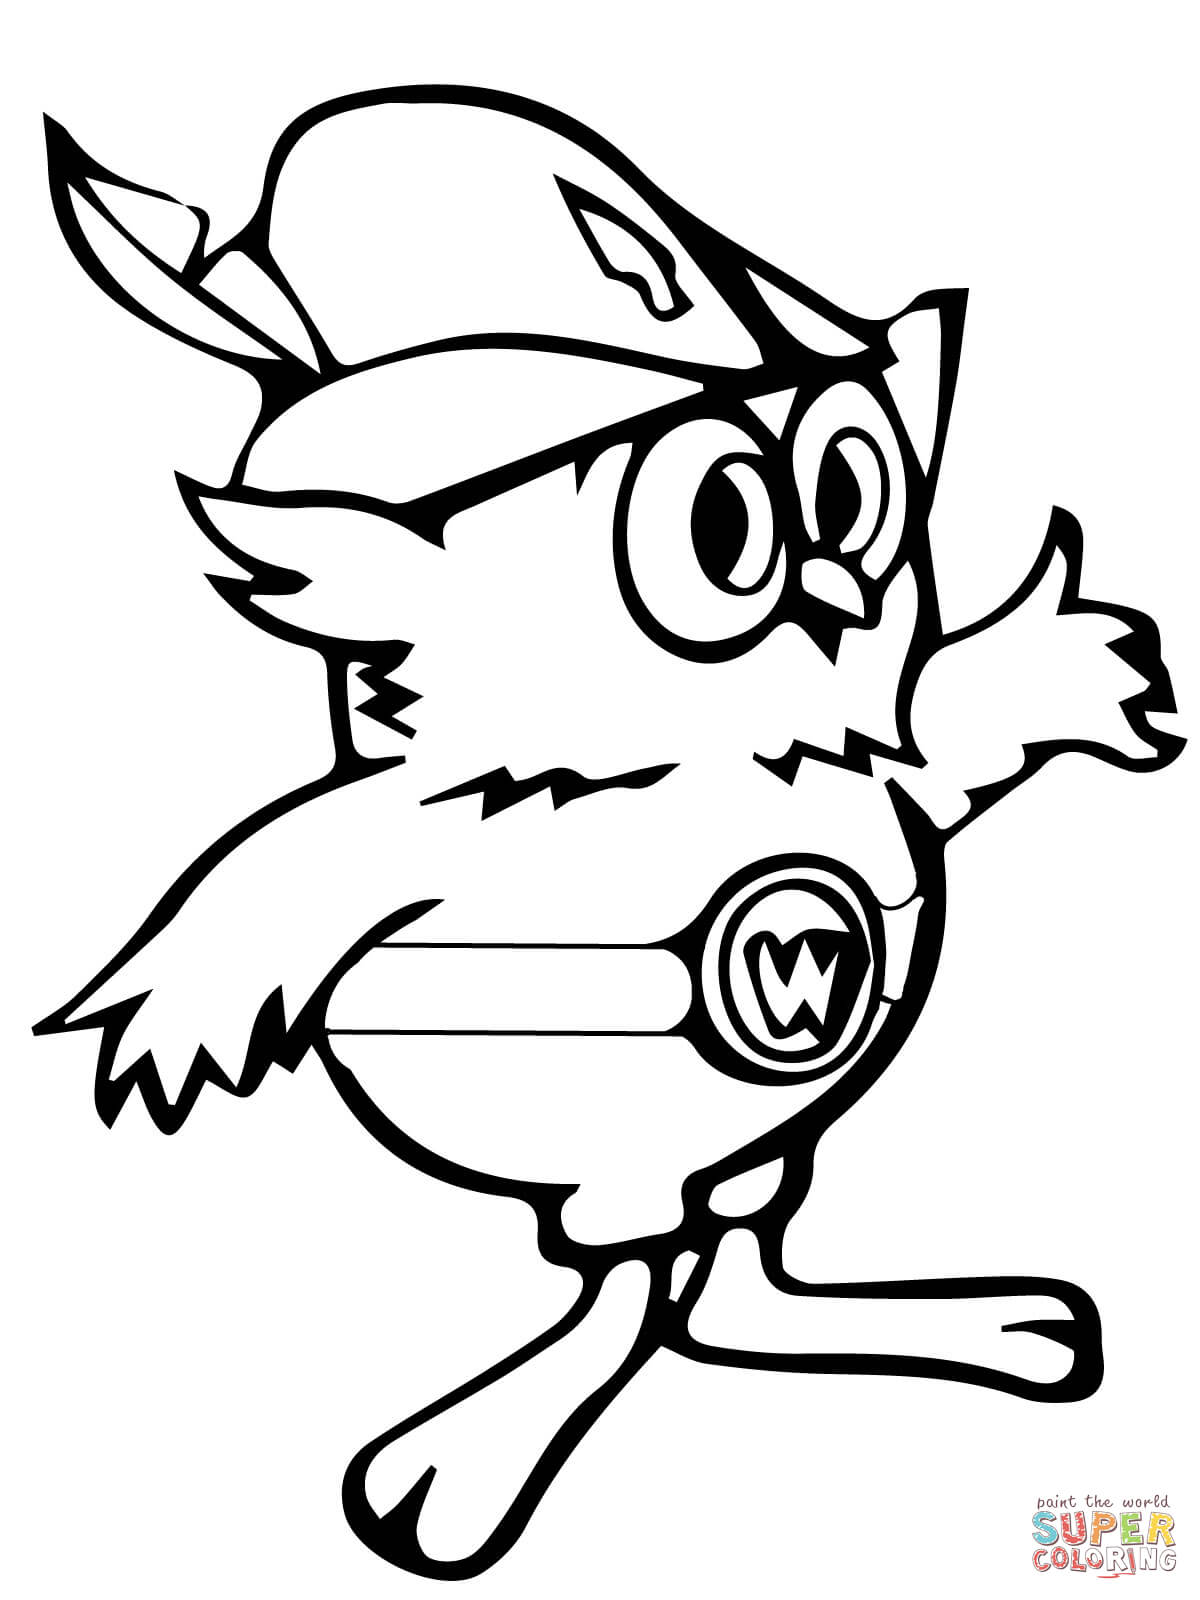 barn owl coloring pages printable woodsy owl coloring page free printable coloring pages owl printable coloring barn pages